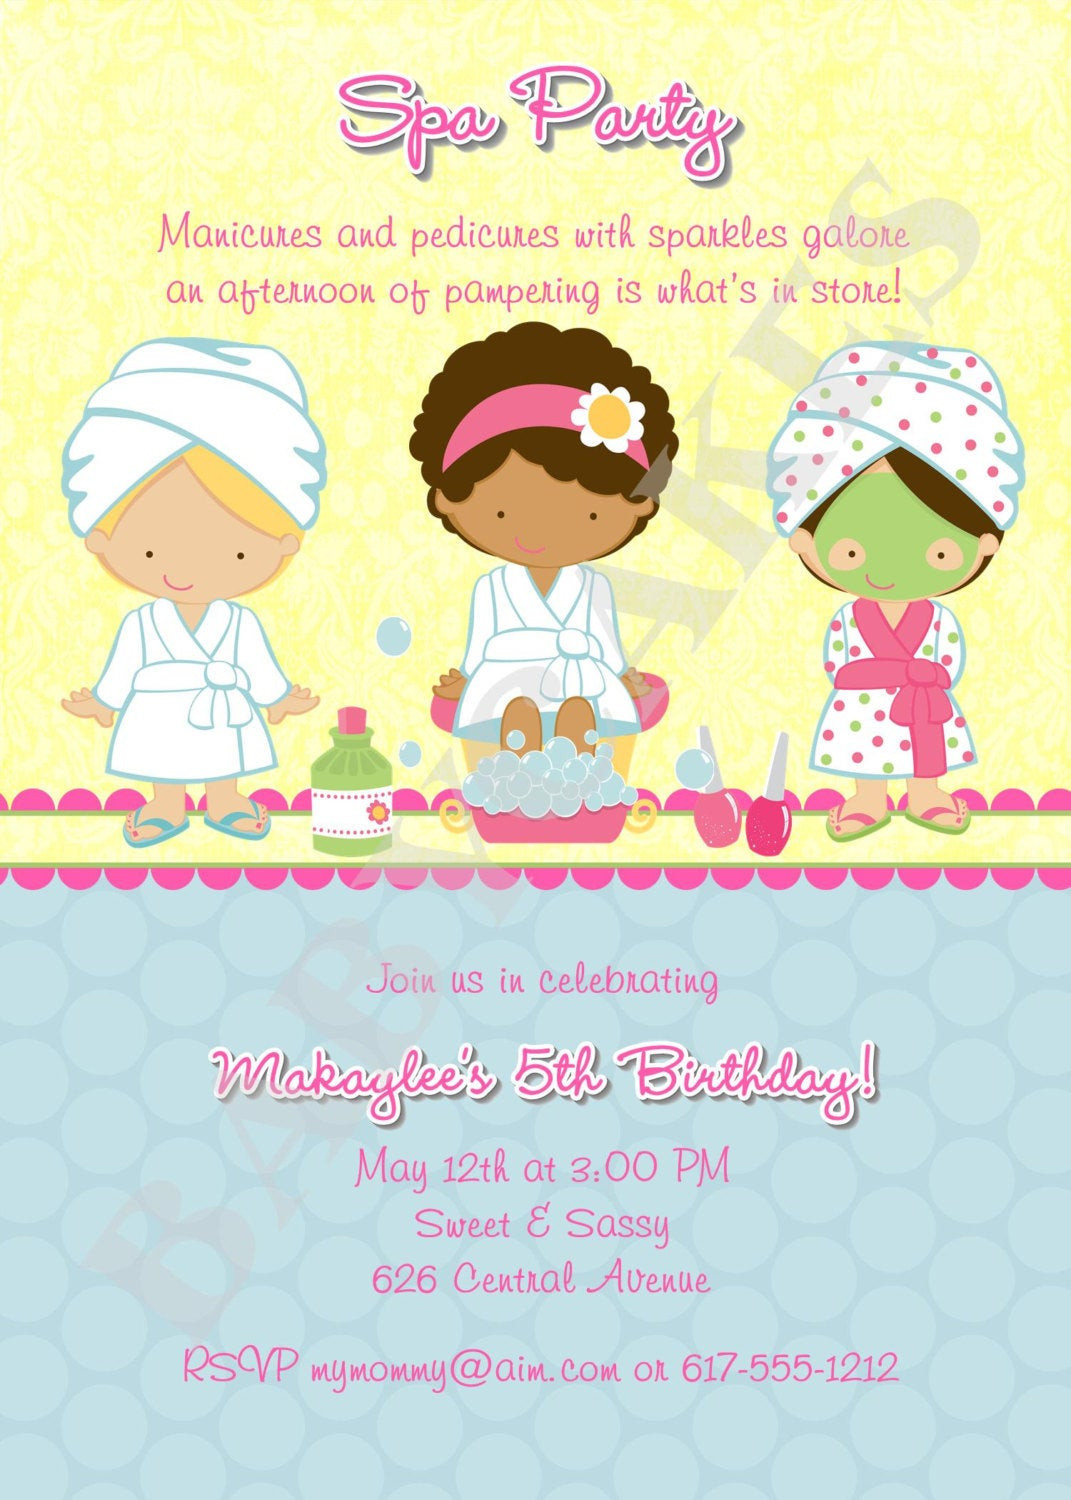 Best ideas about Spa Birthday Invitations . Save or Pin Spa Party Birthday Invitation DIY Print Your Own Now.